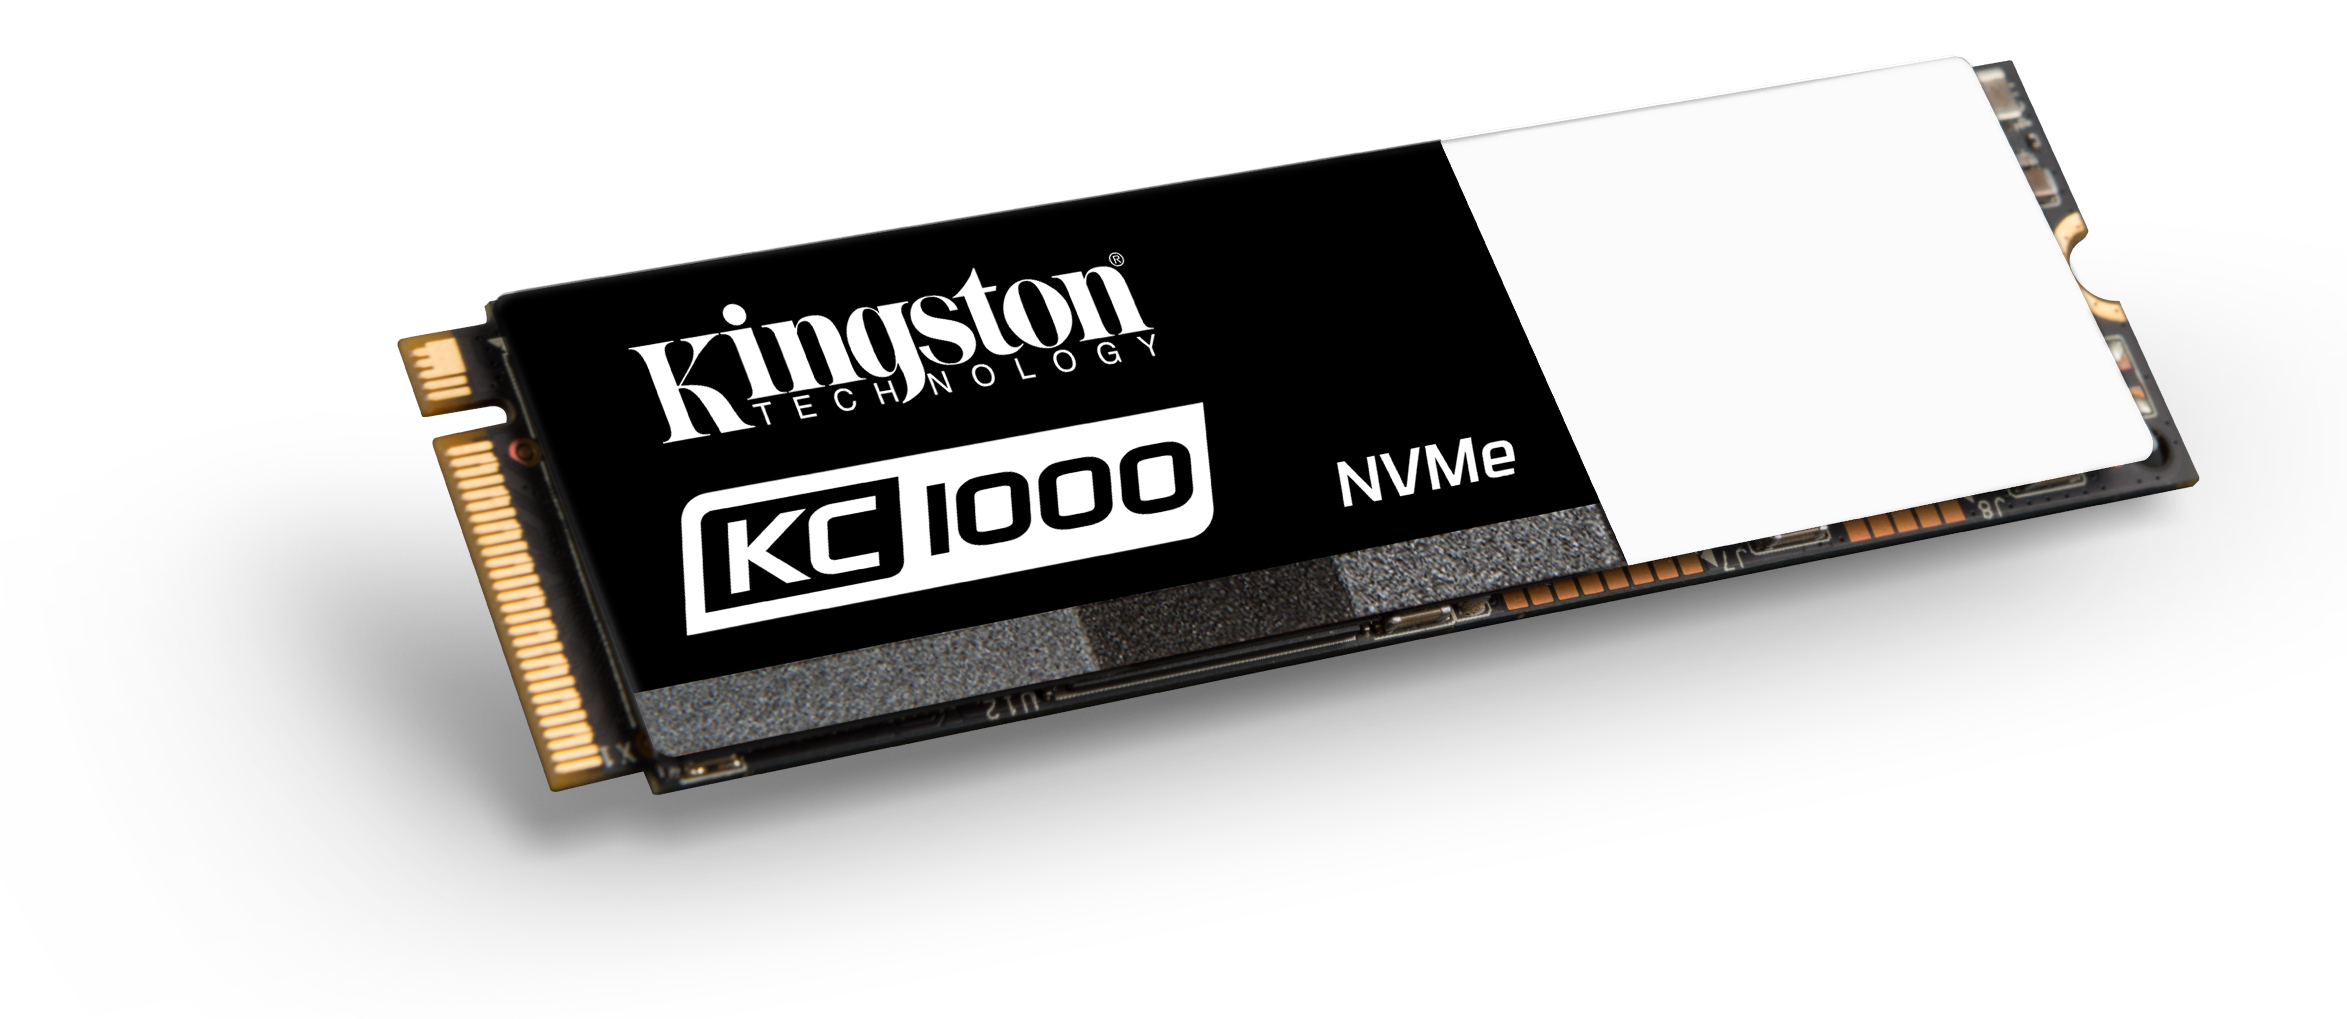 KC1000 SSD M.2 - Kingston announced first NVMe SSD, the KC1000